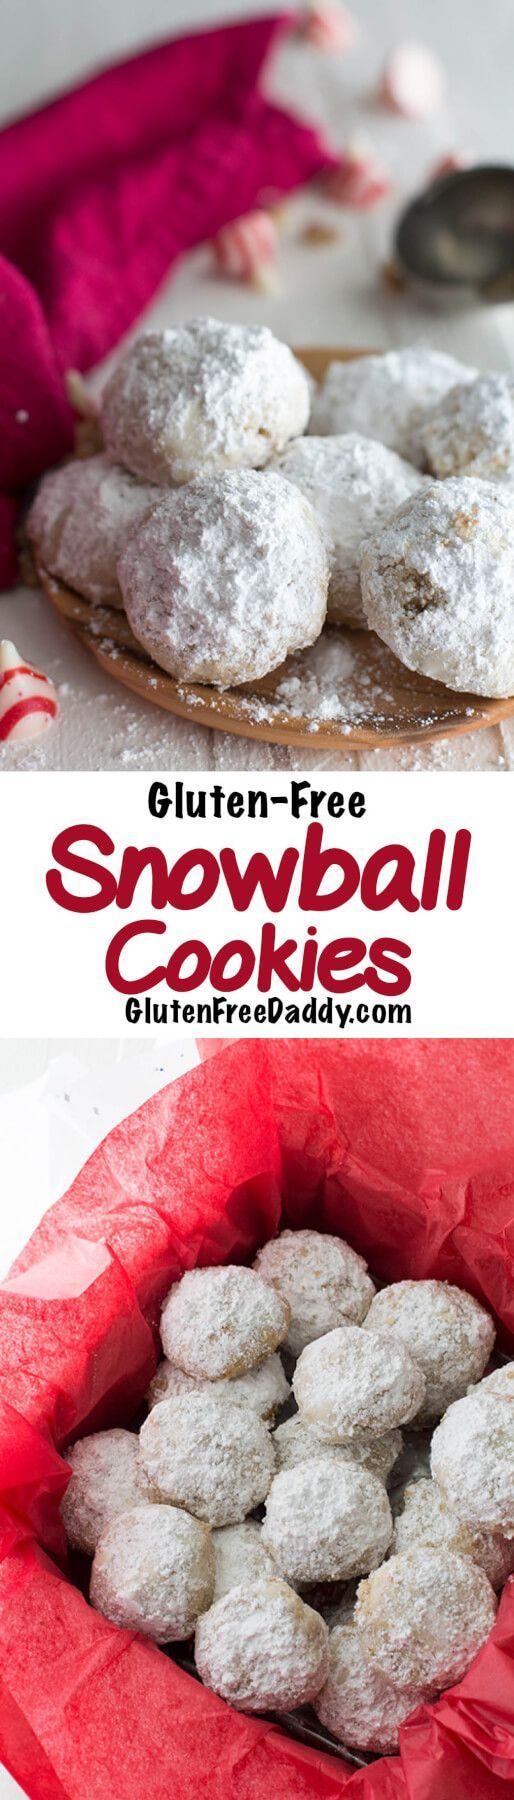 These gluten-free snowball cookies are my favorite Christmas cookie of all time. Only 5 ingredients, plus the secret filling and powdered sugar. I love the walnut flavor of the cookies and not knowing what secret filling I will get. AD